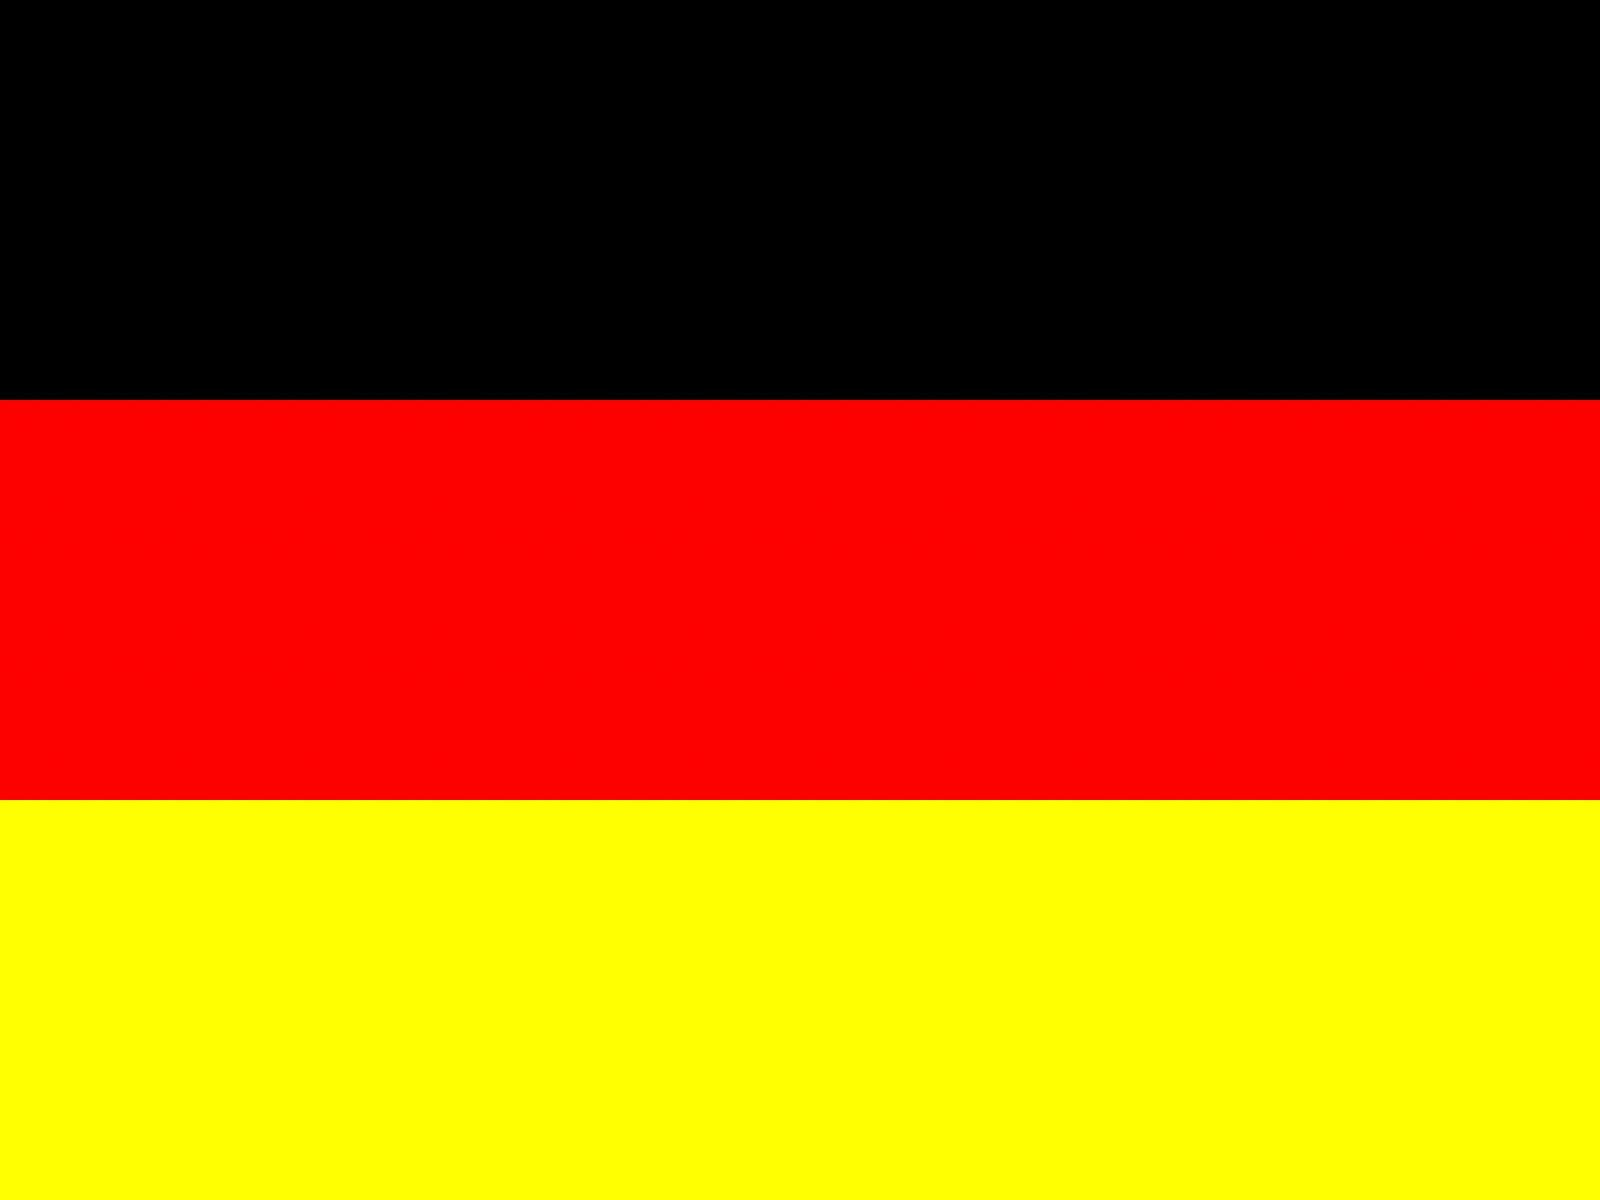 German Flag Wallpaper - WallpaperSafari